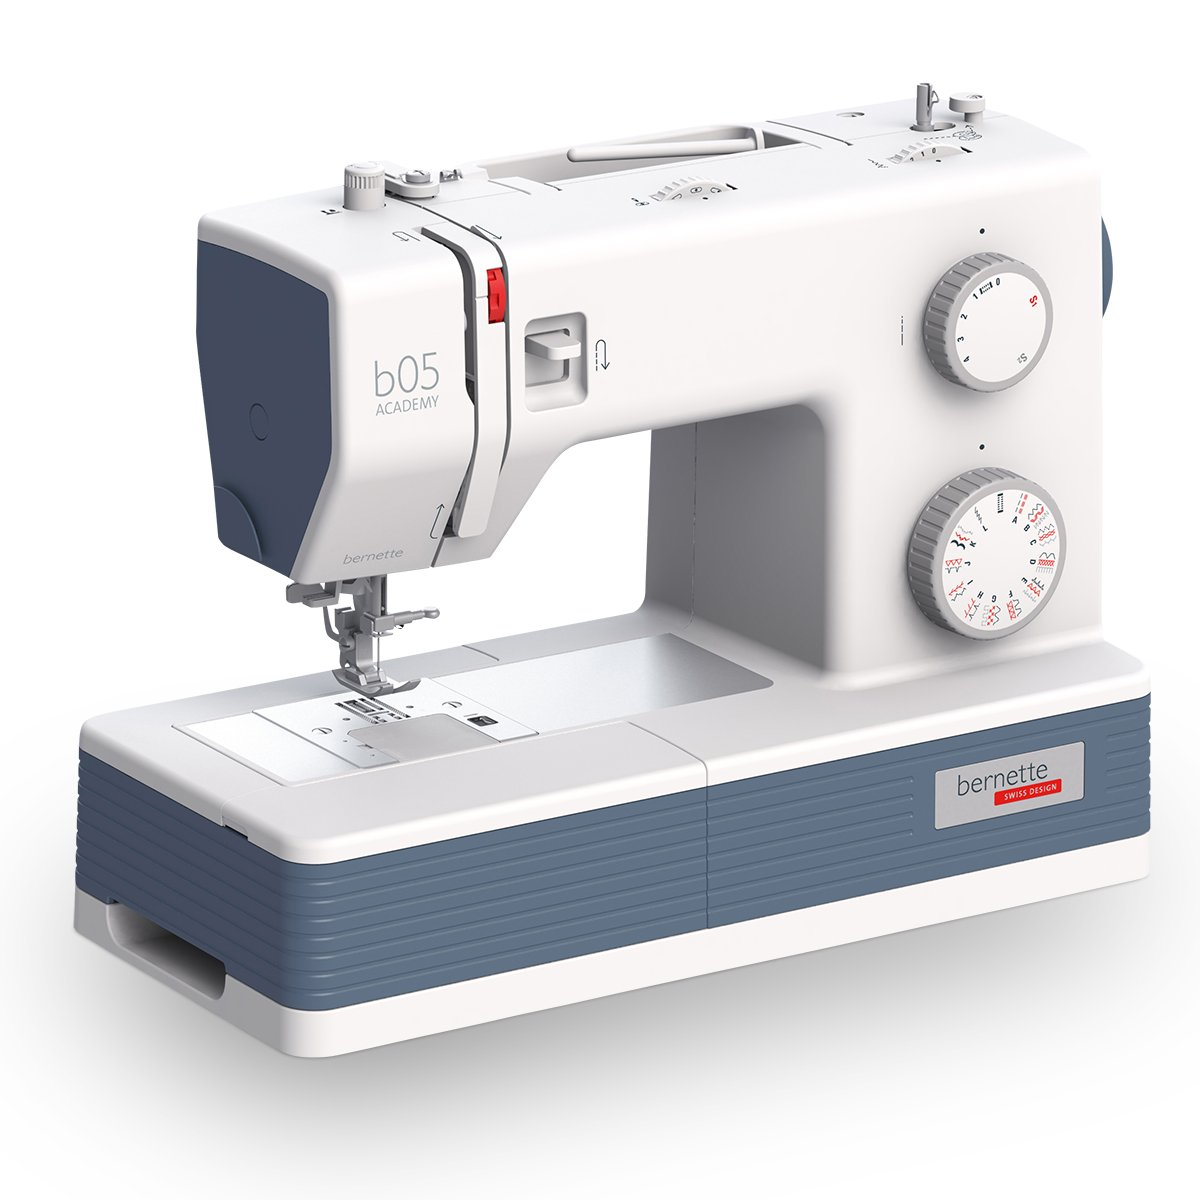 Bernette Academy B05 Sewing Machine